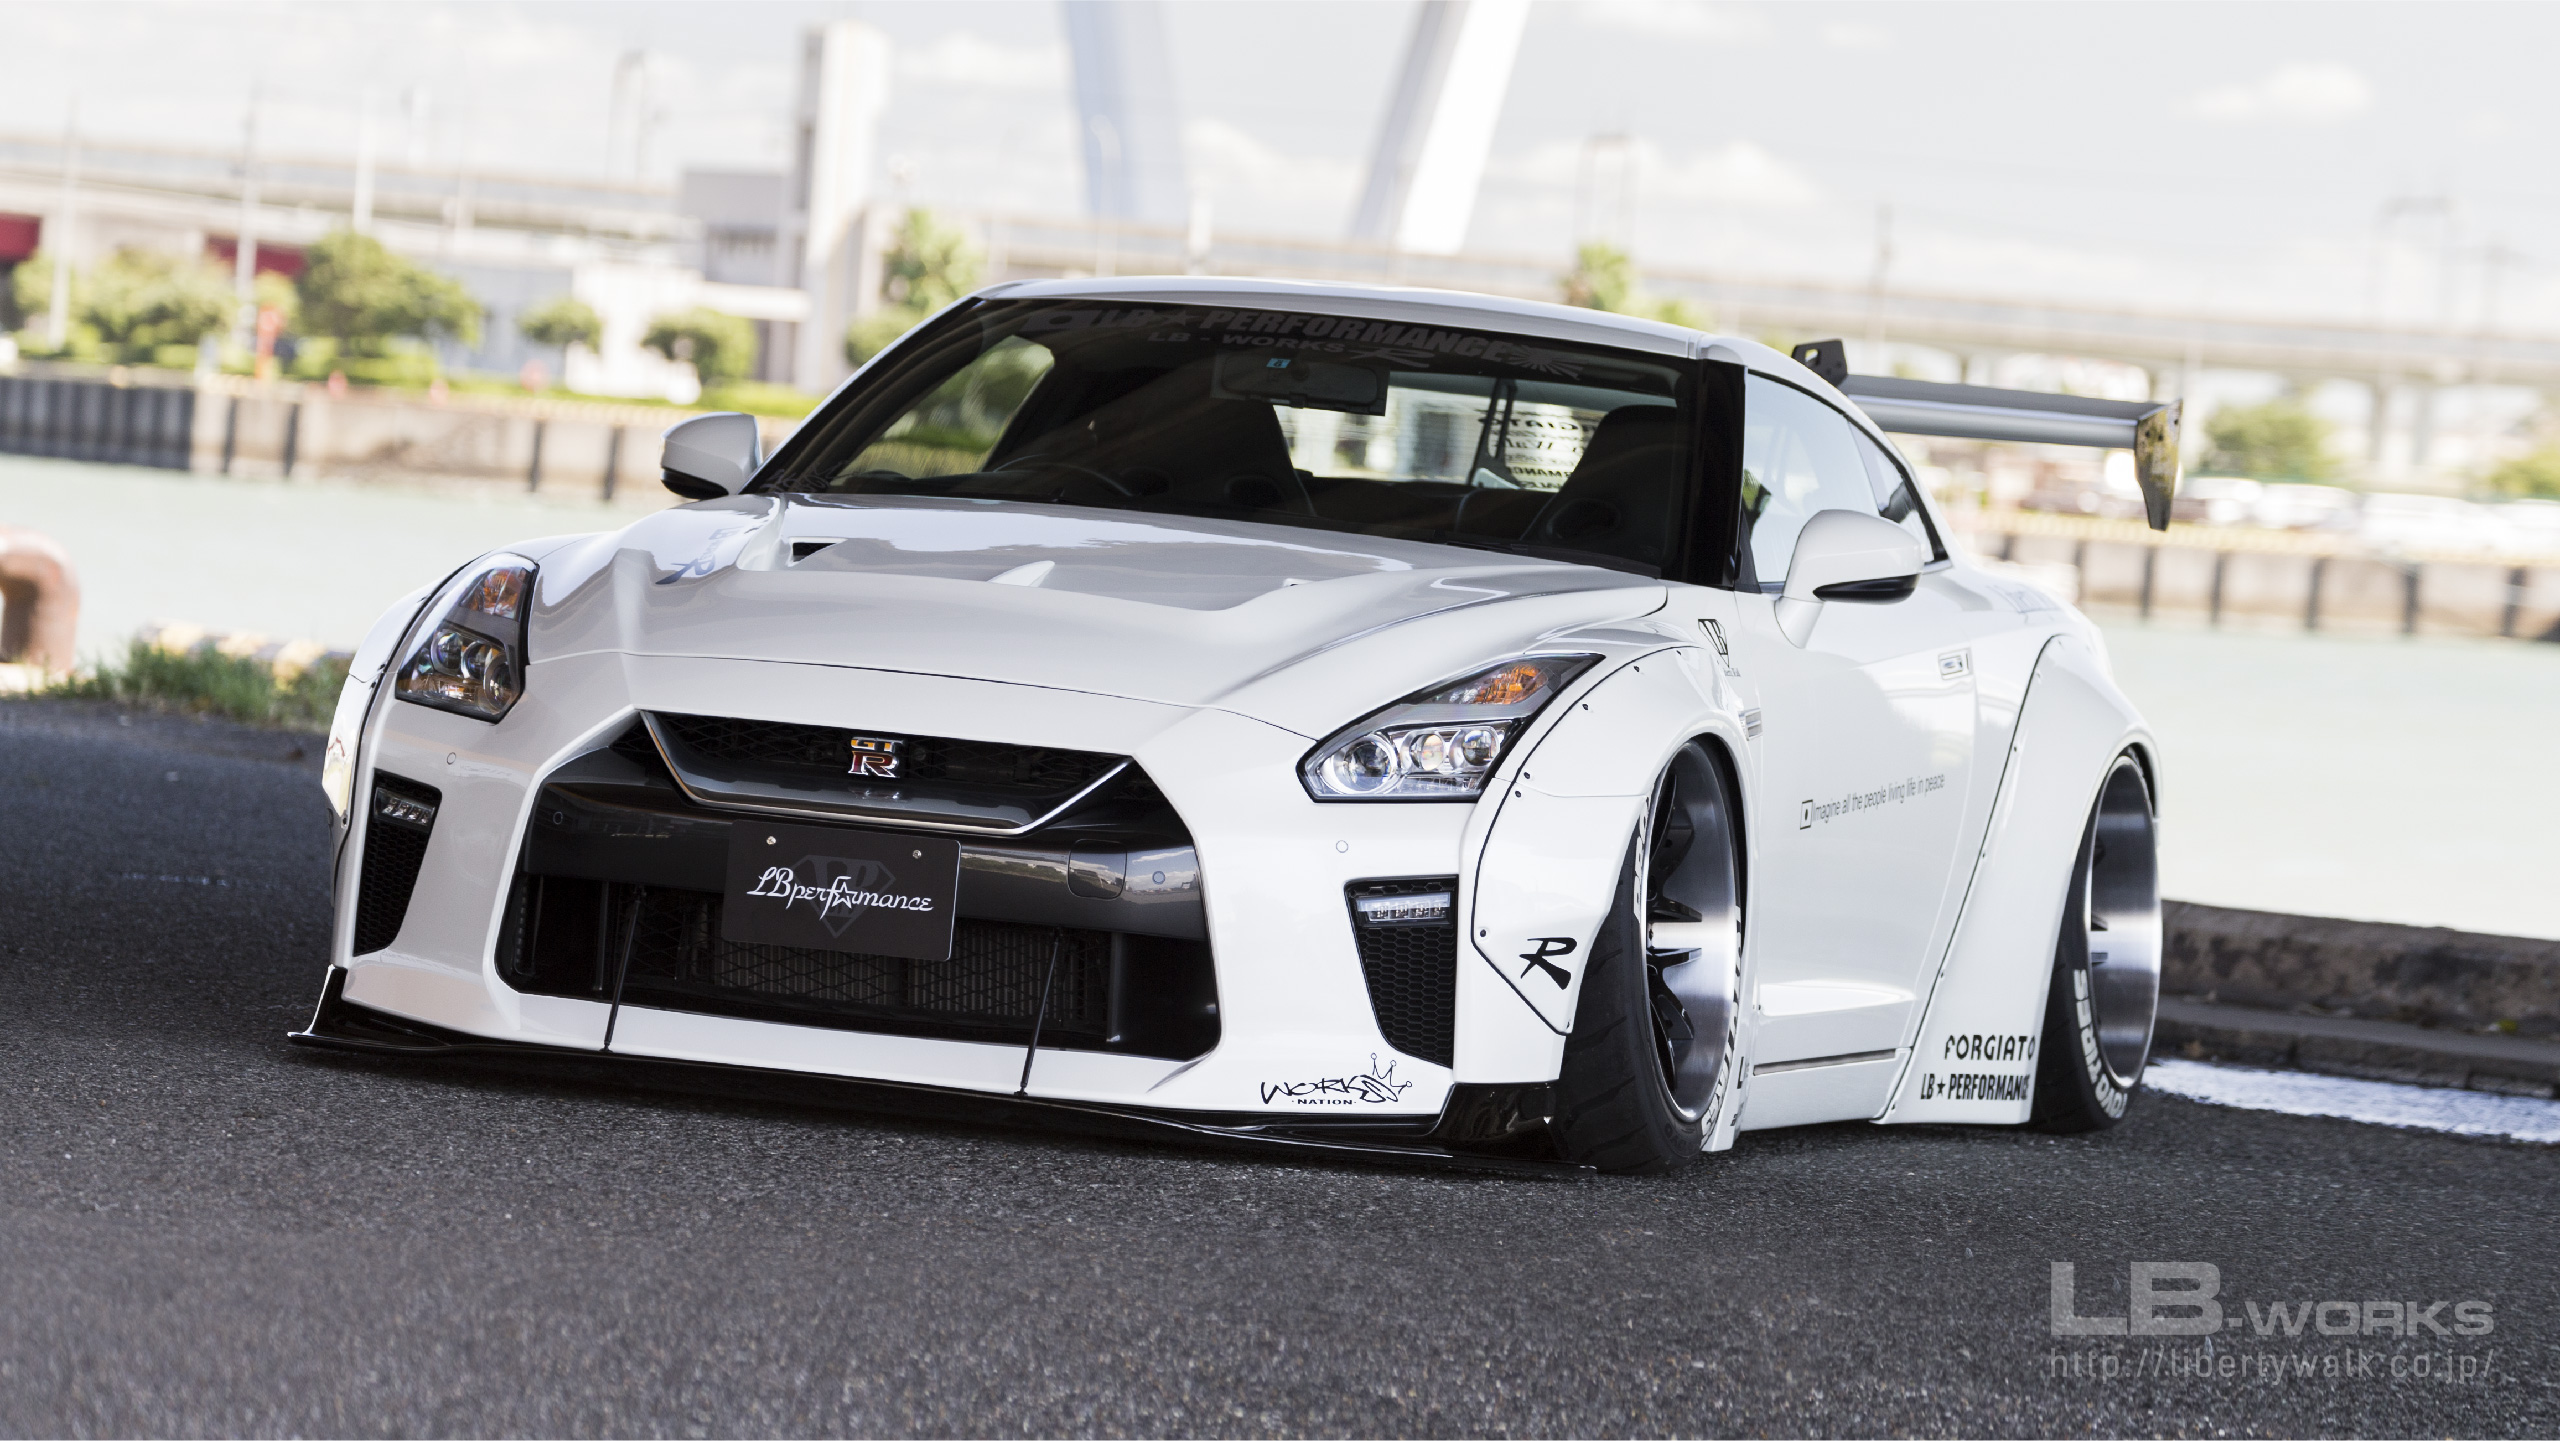 18-80 LB-WORKS NISSAN GT-R R35 type 1.5